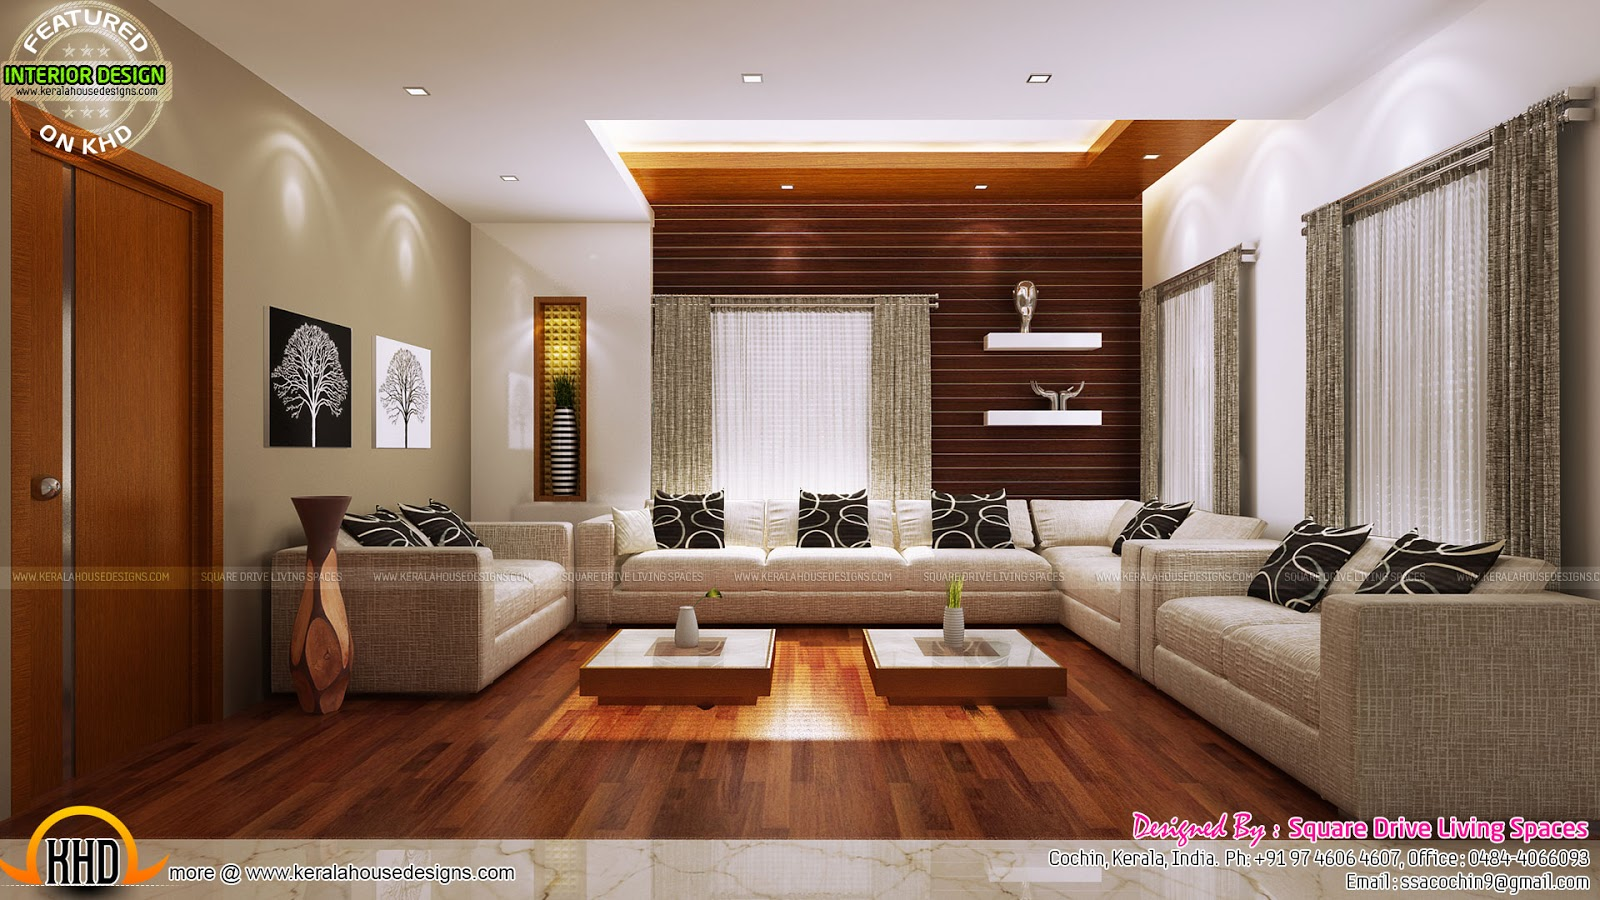 Excellent kerala interior design kerala home design and for Room design of house